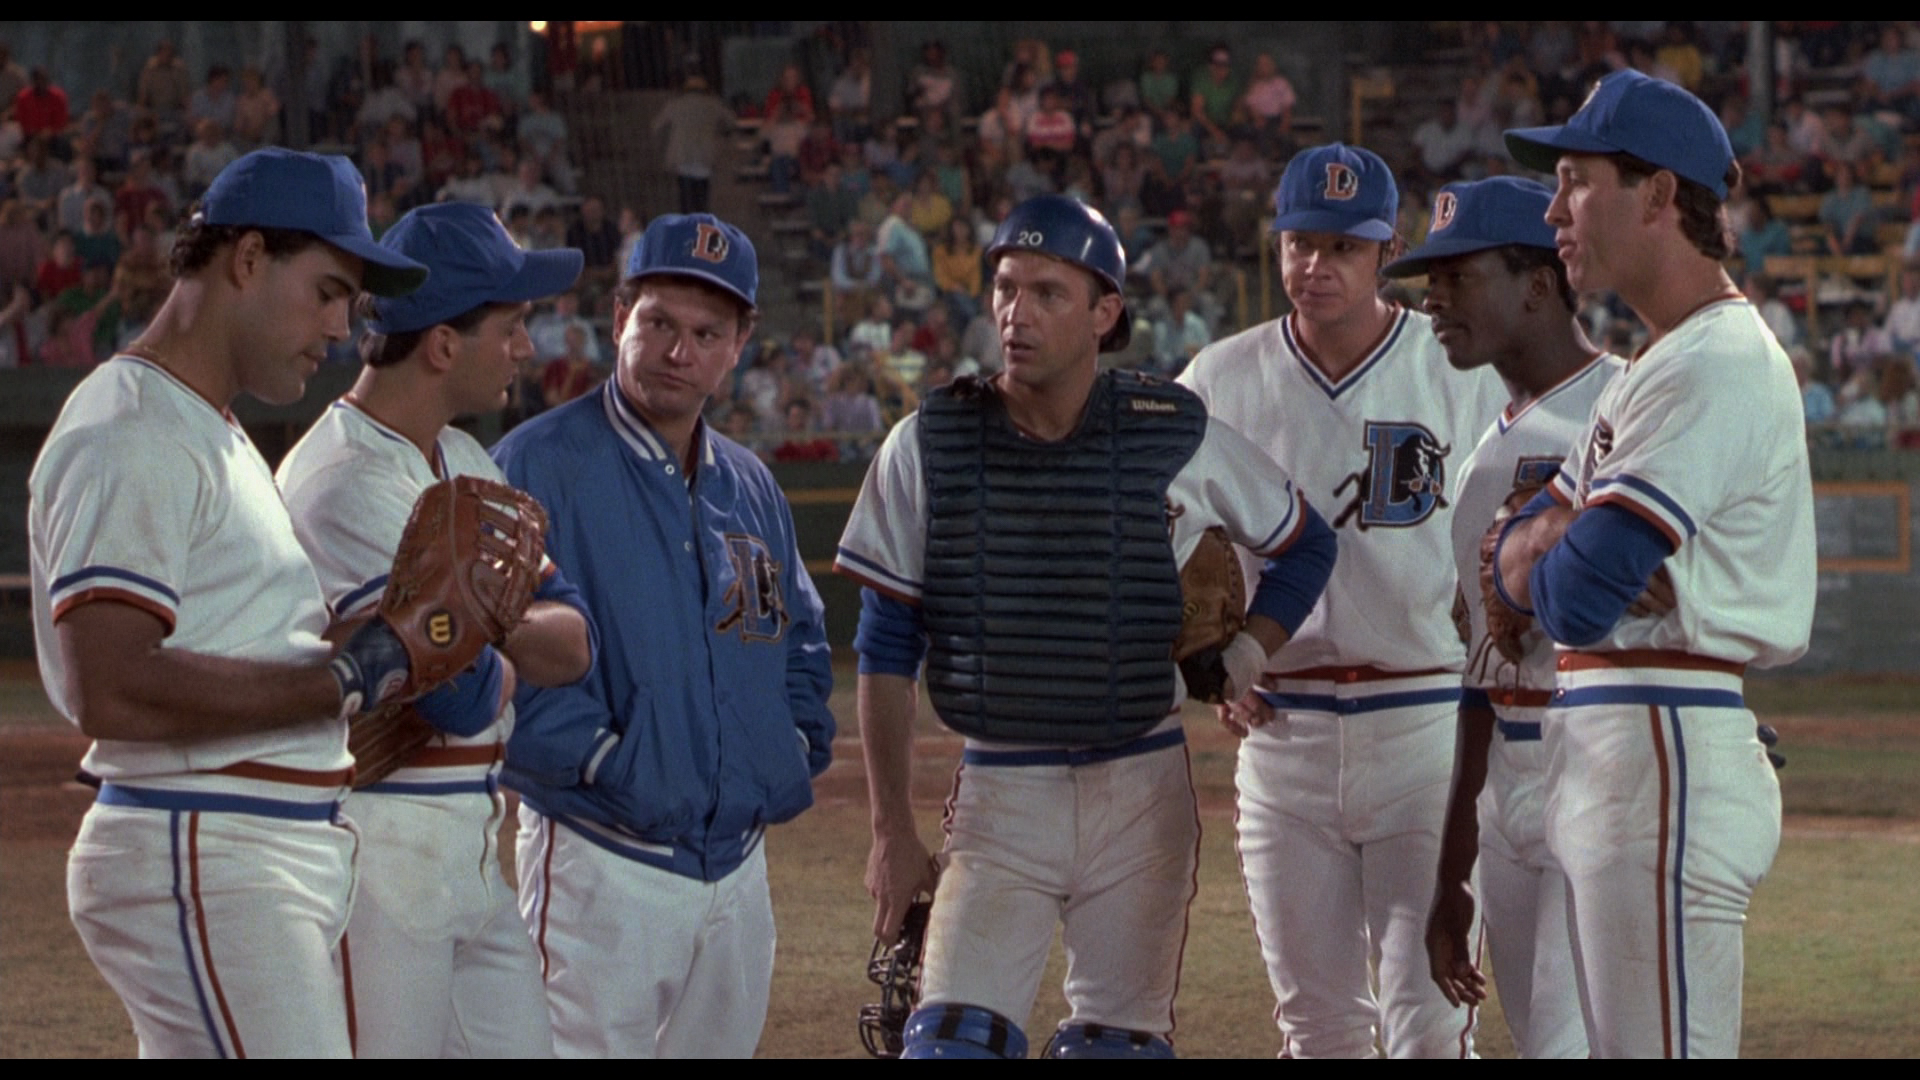 Bull durham to the true meaning